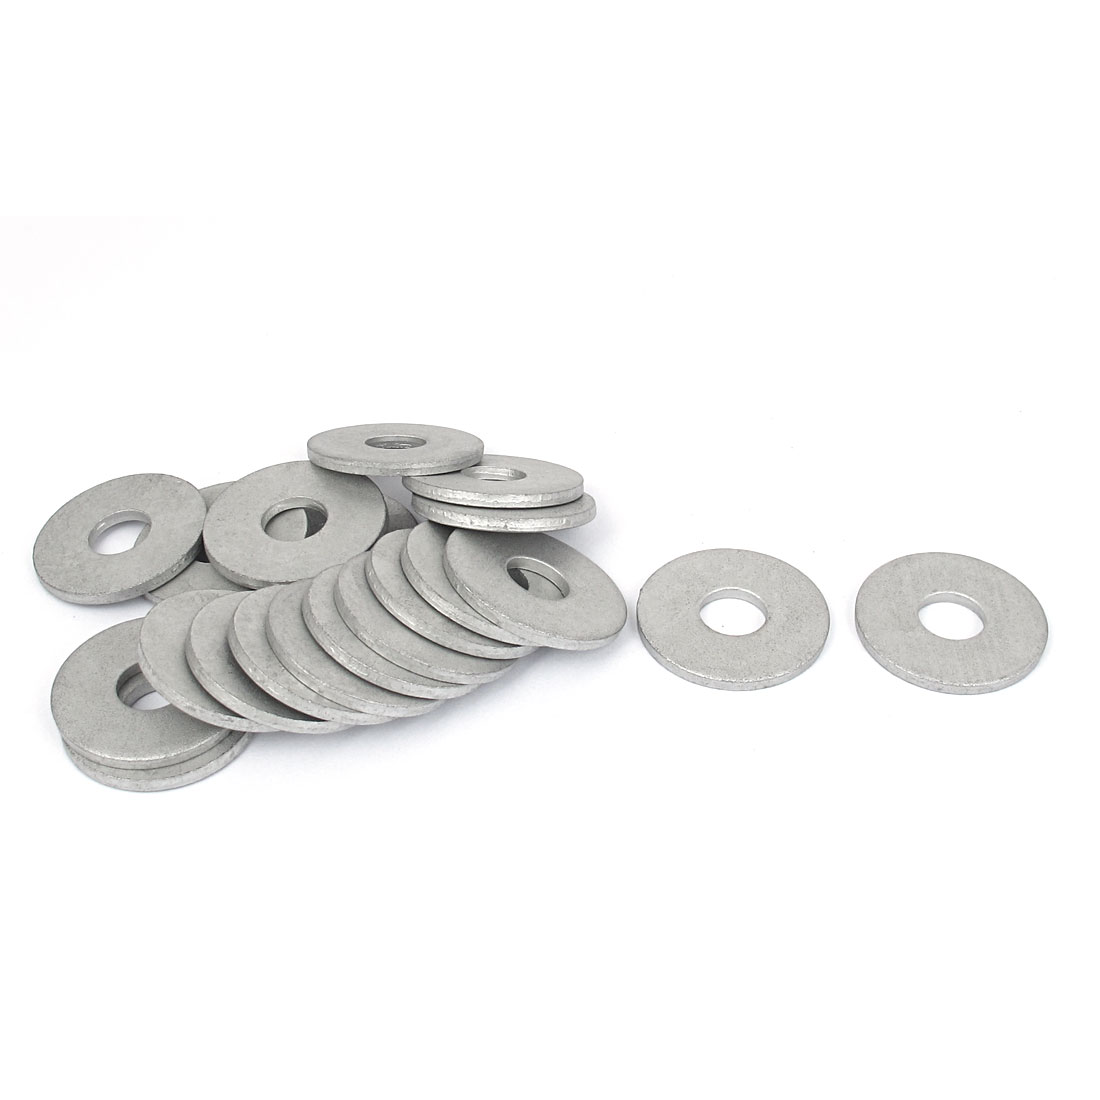 20Pcs M12x37mmx3mm Stainless Steel Metric Round Flat Washer for Bolt Screw